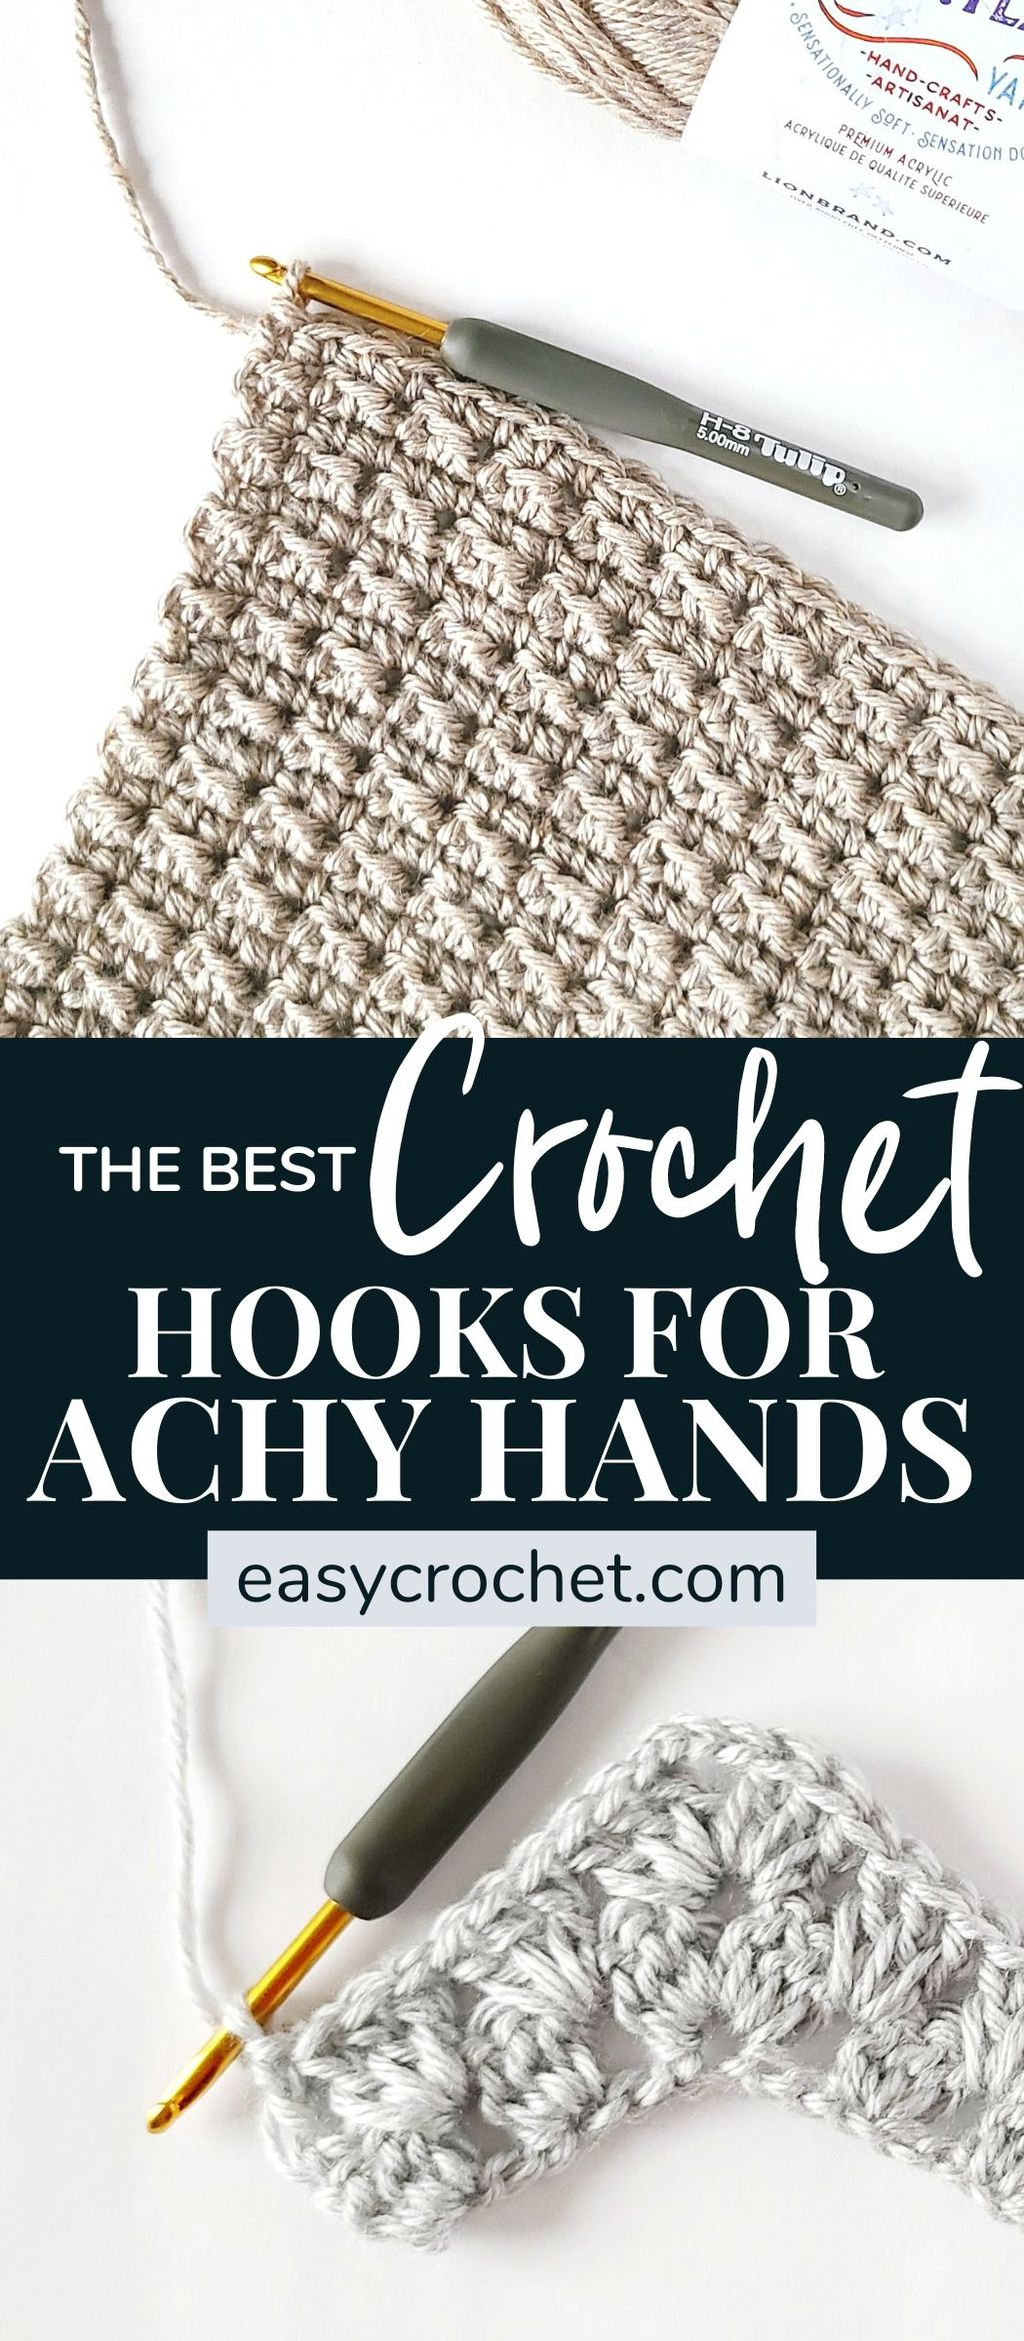 The Best Ergonomic Crochet Hooks via @easycrochetcom